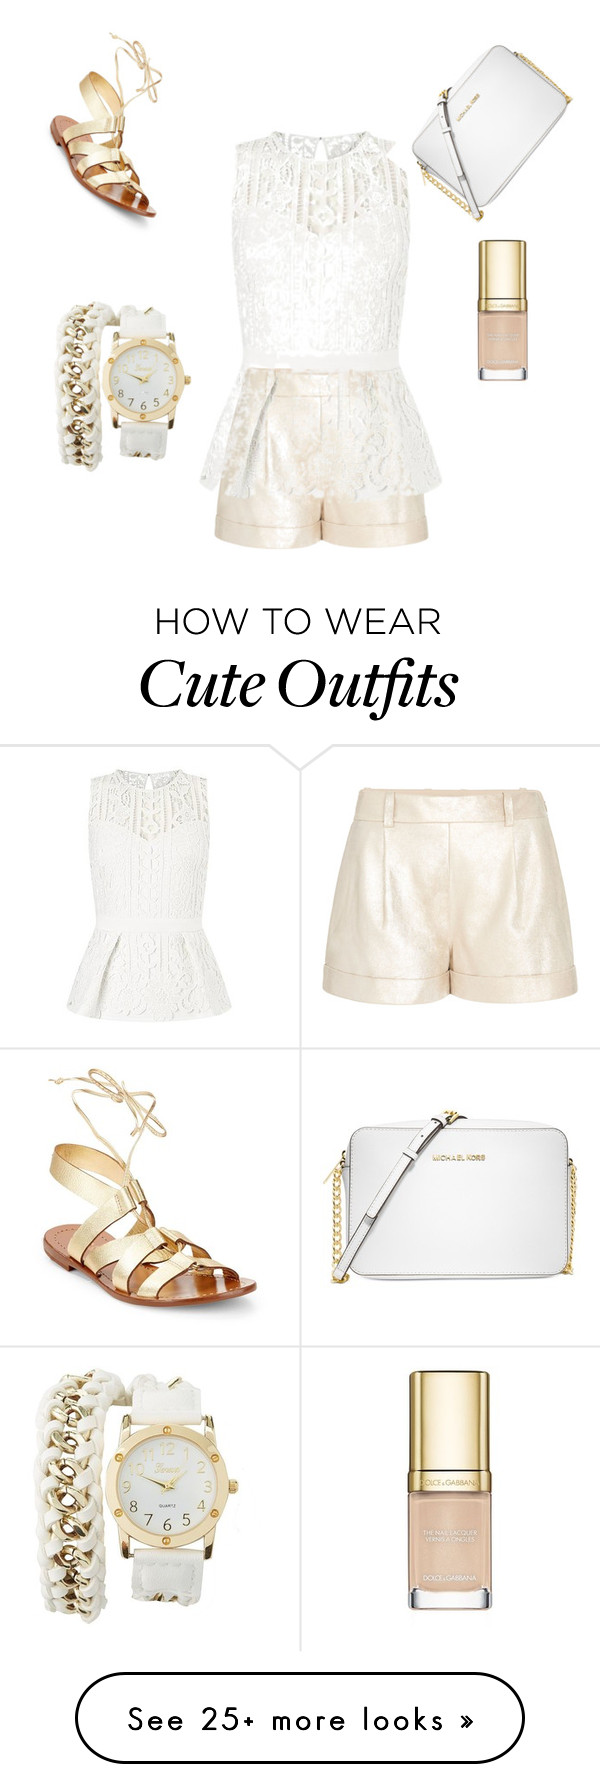 """Cute going out day outfit "" by styleicon12 on Polyvore featuring Diane Von Furstenberg, Lipsy, Kate Spade, Michael Kors, Charlotte Russe and Dolce&Gabbana"